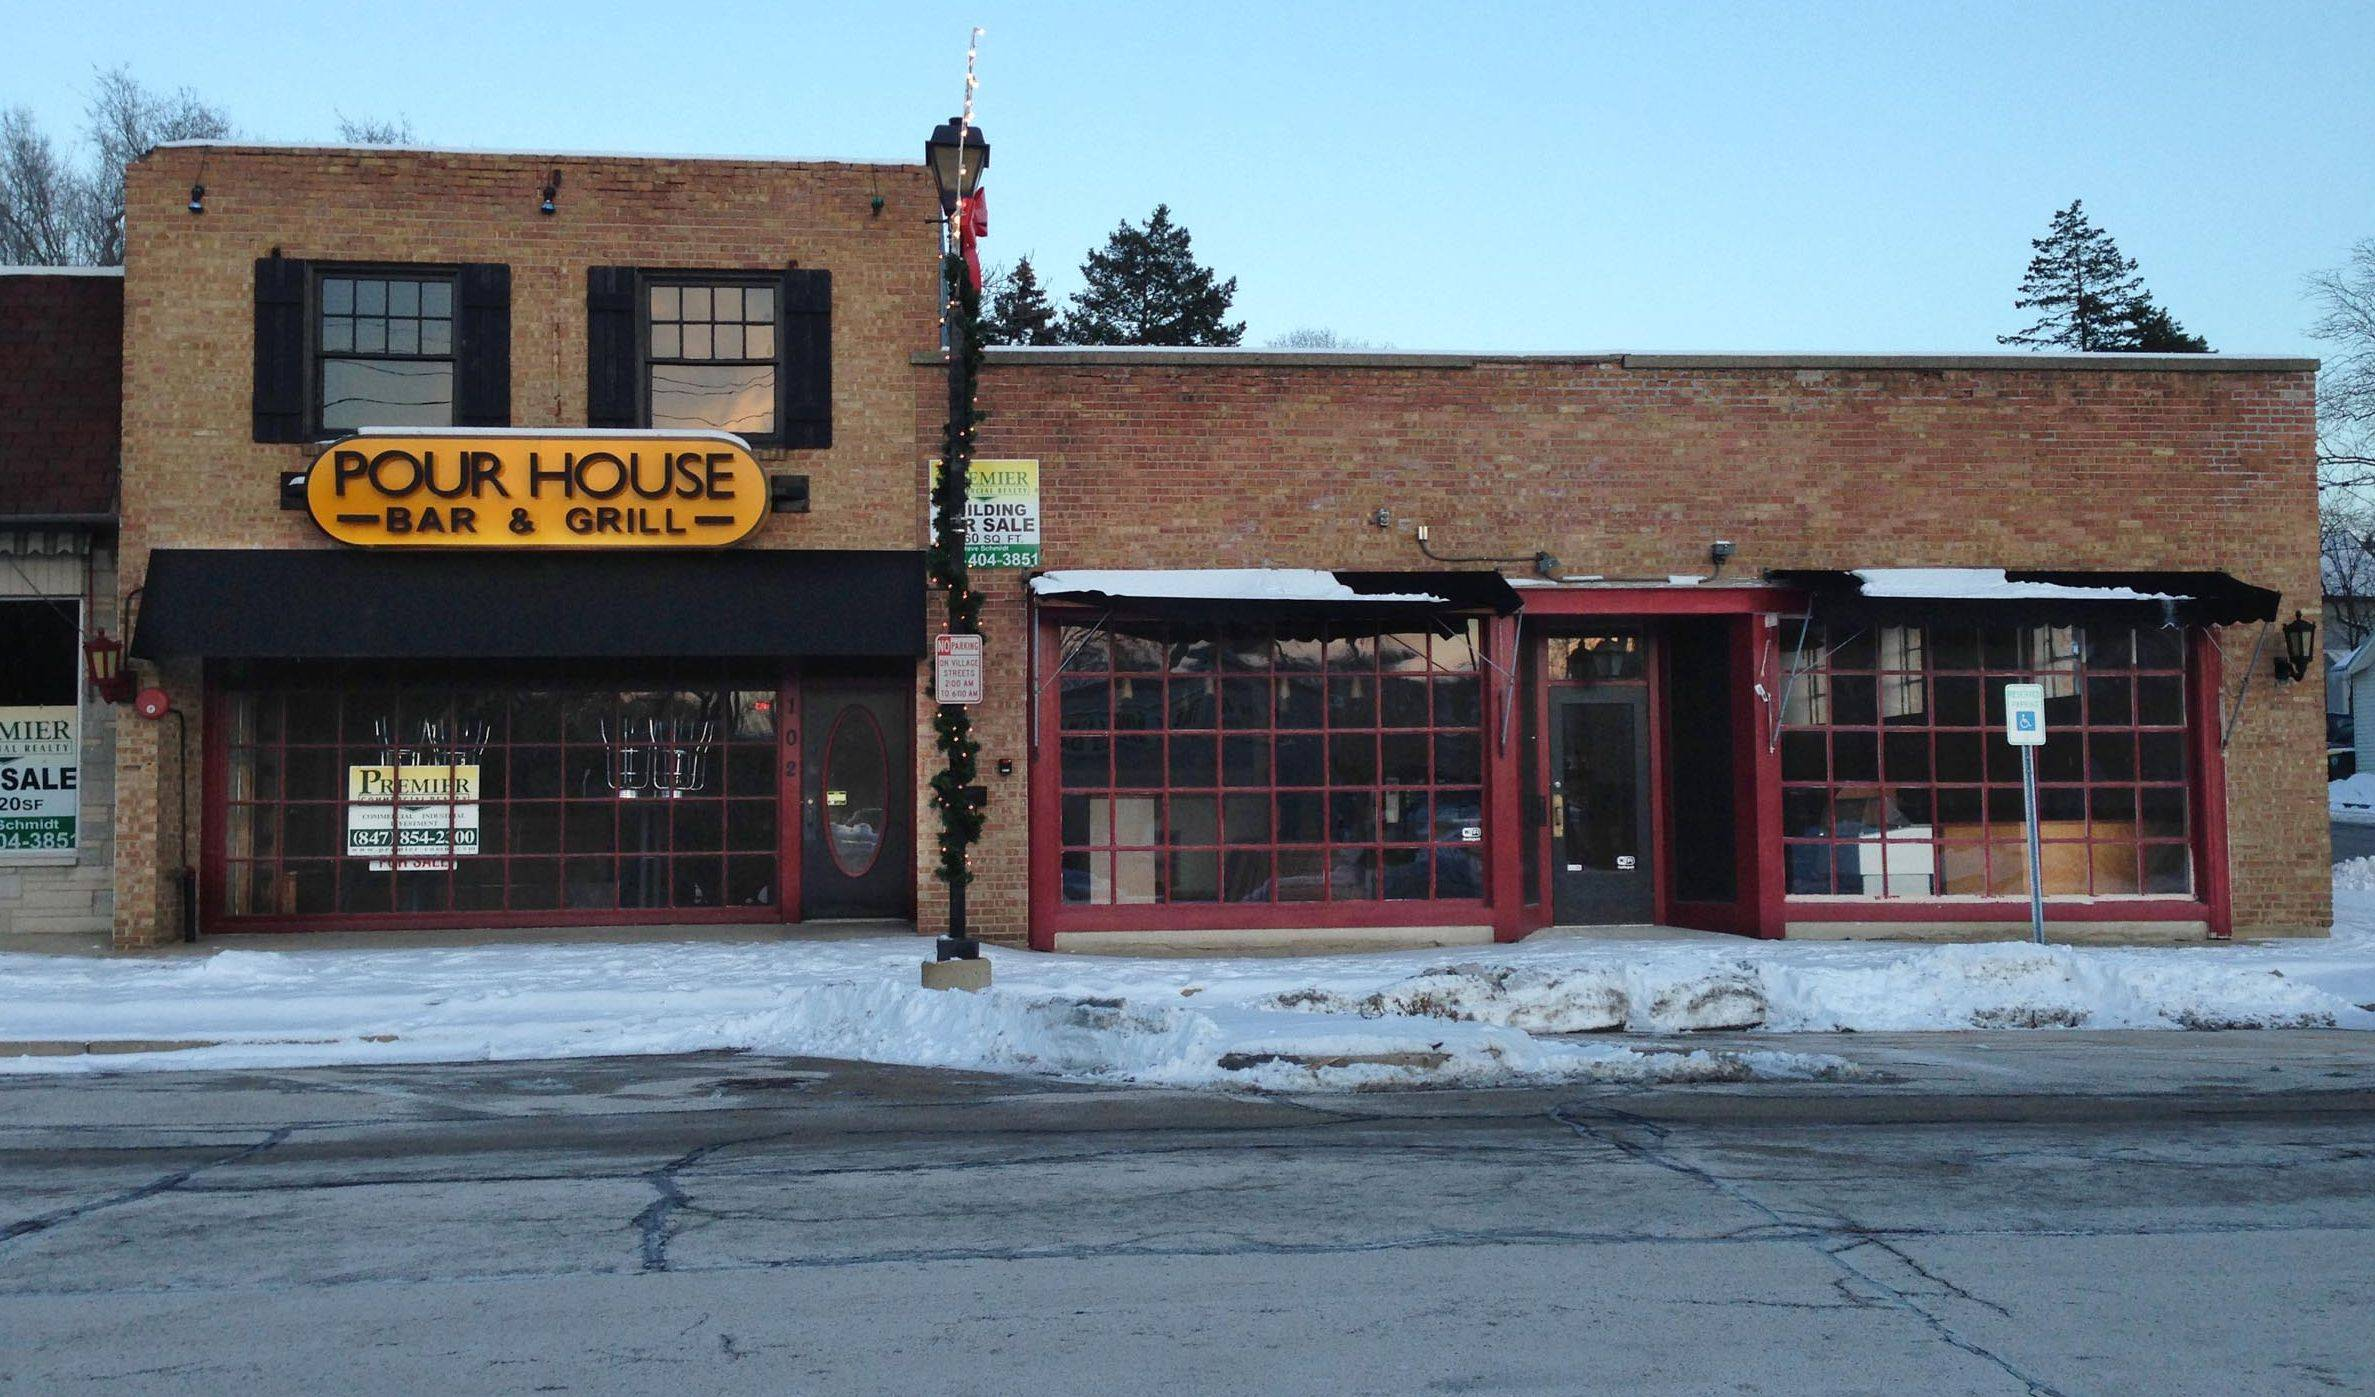 George Arsoniadis, a local restaurateur, is in talks to buy and turn the former Pour House and the former Puzzle Dust Cafe into a sit-down restaurant and bar called Bootleggers Speakeasy on River Road in downtown East Dundee. He is seeking financial assistance from the village for the purchase and renovation of both properties.